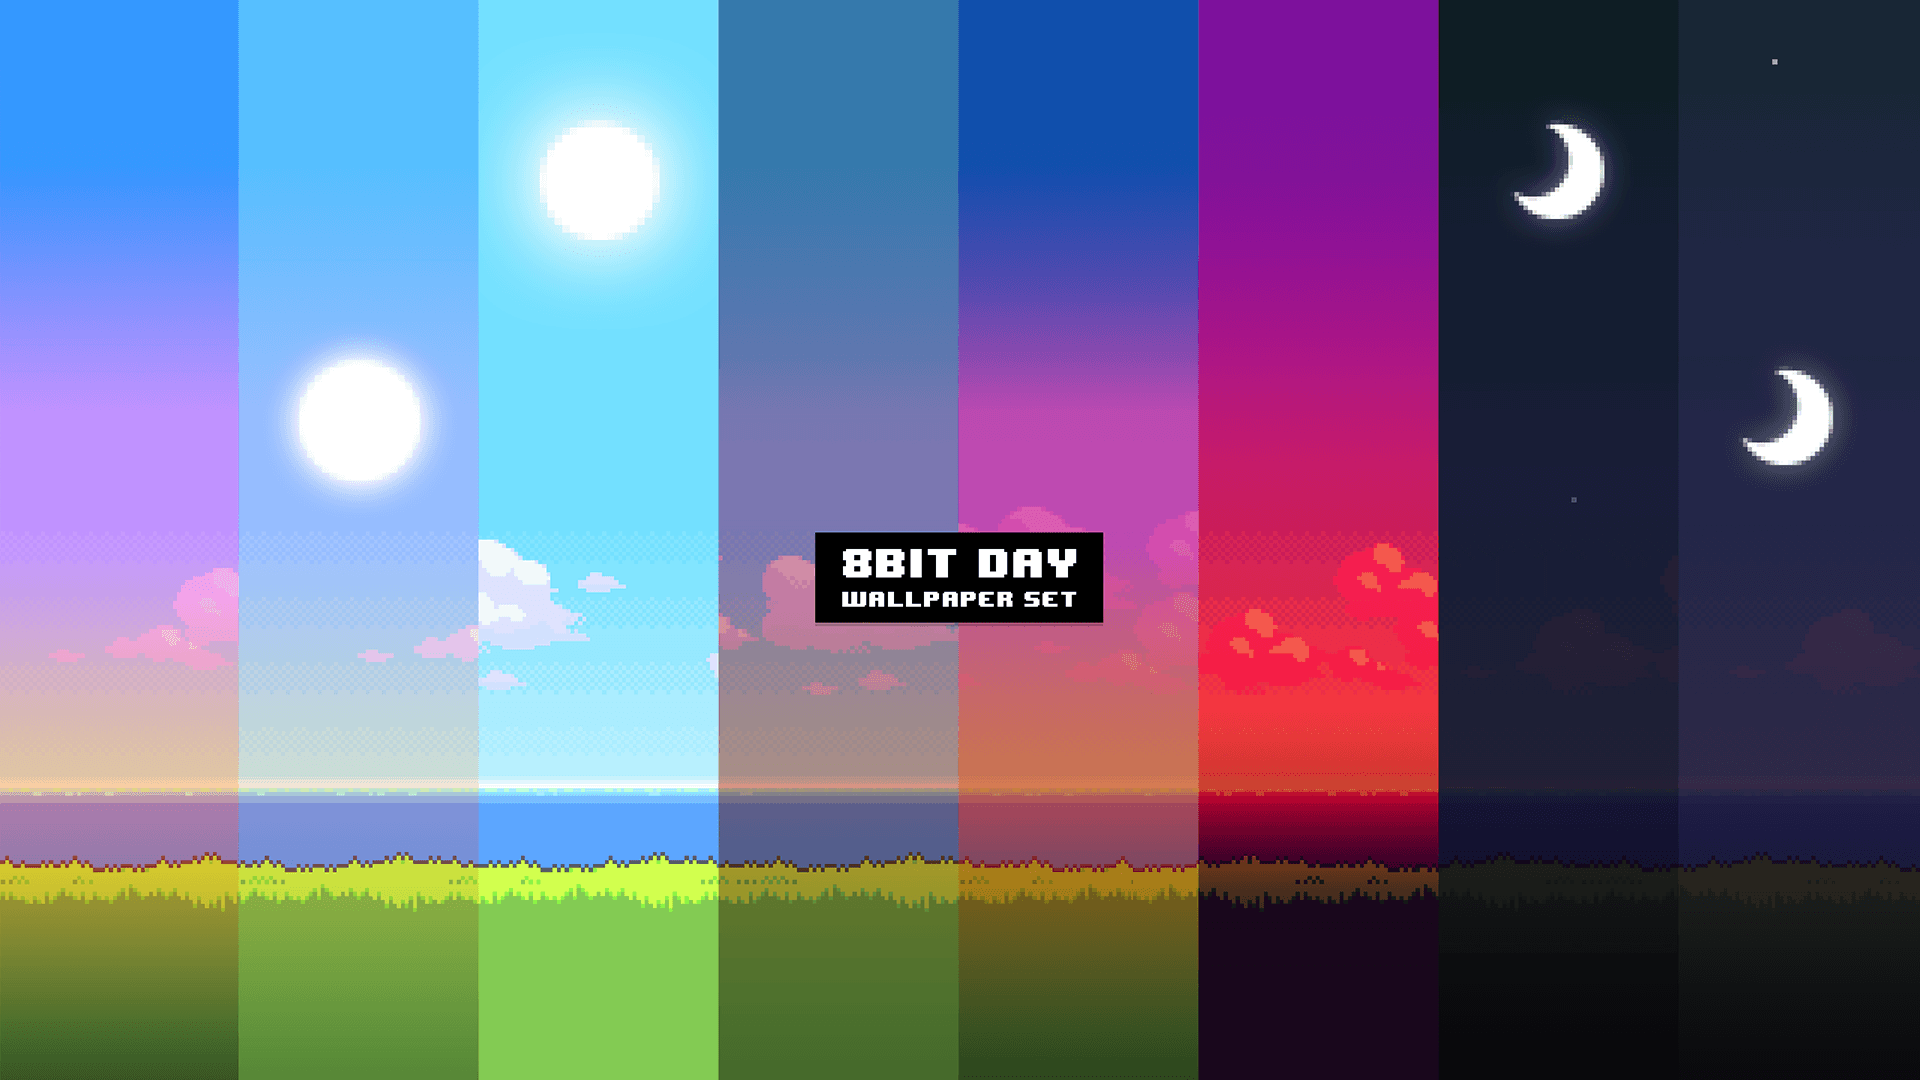 This Cool Retro Desktop Wallpapers Changes Throughout The Day